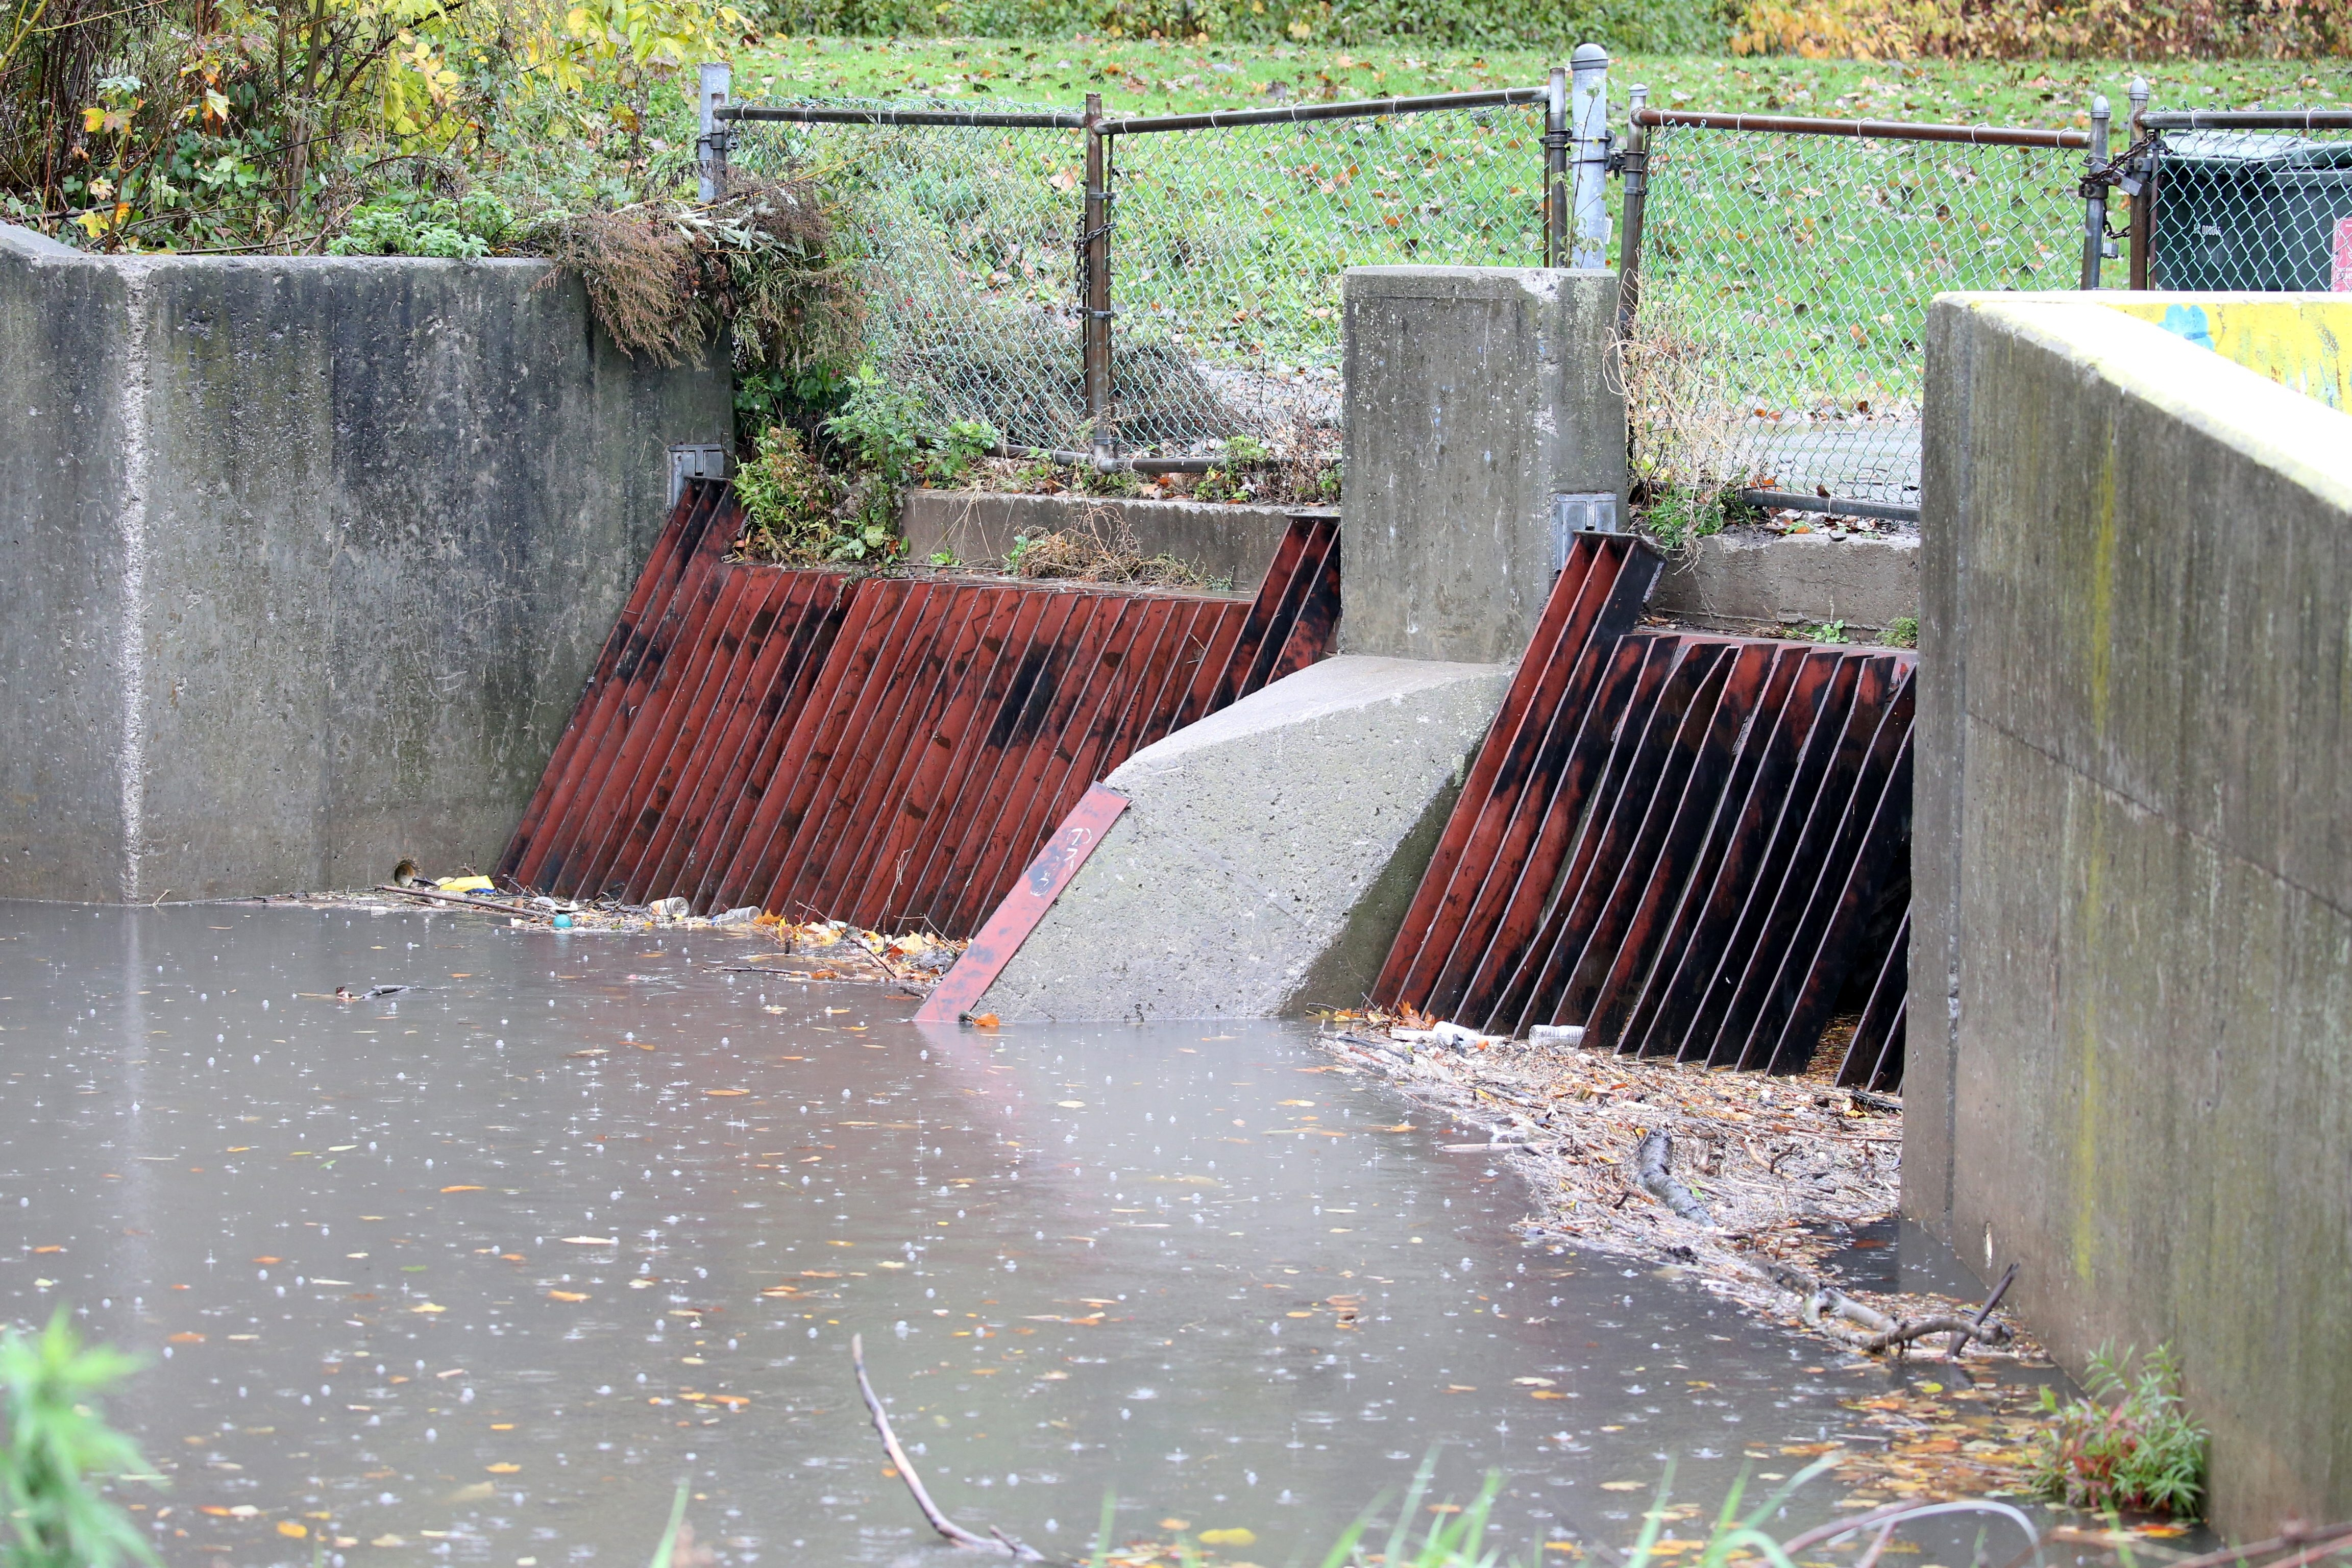 The cleanup of Western New York waterways, including Scajaquada Creek, is threatened by unwarranted congressional efforts to cut funding for the Clean Water State Revolving Fund.